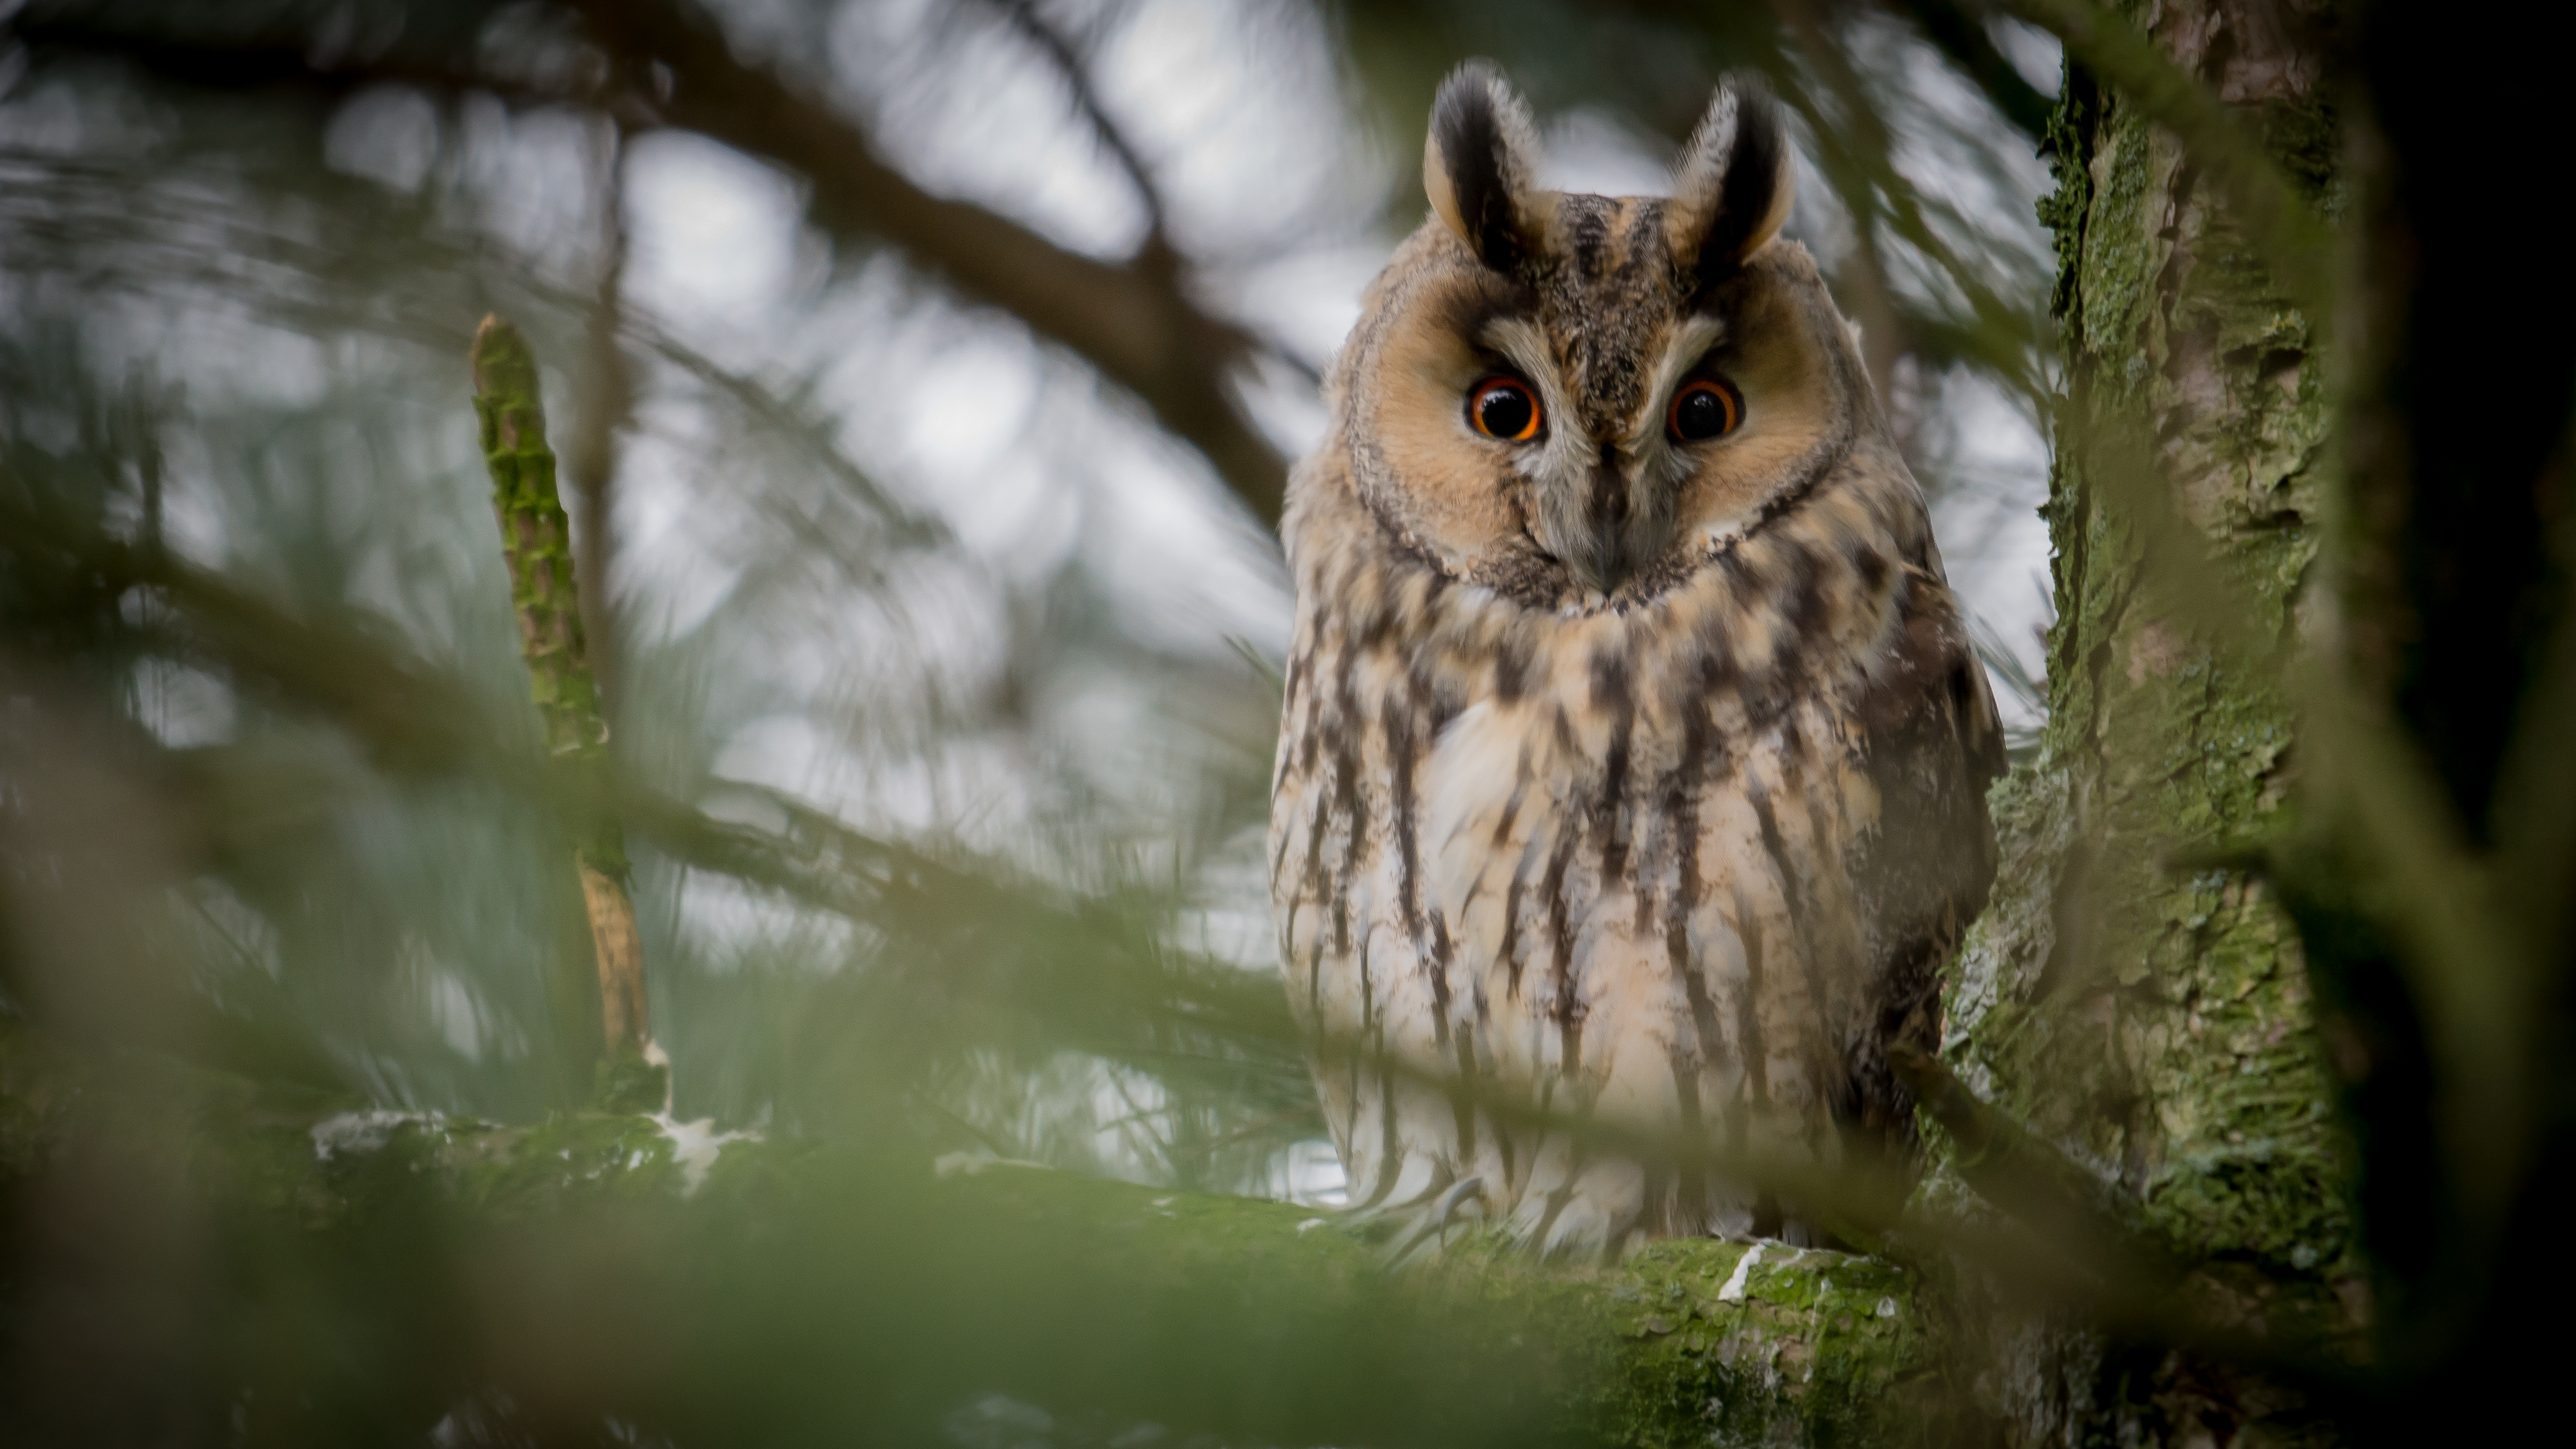 142850 download wallpaper Animals, Owl, Eagle Owl, Bird, Branches, Branch, Feather screensavers and pictures for free